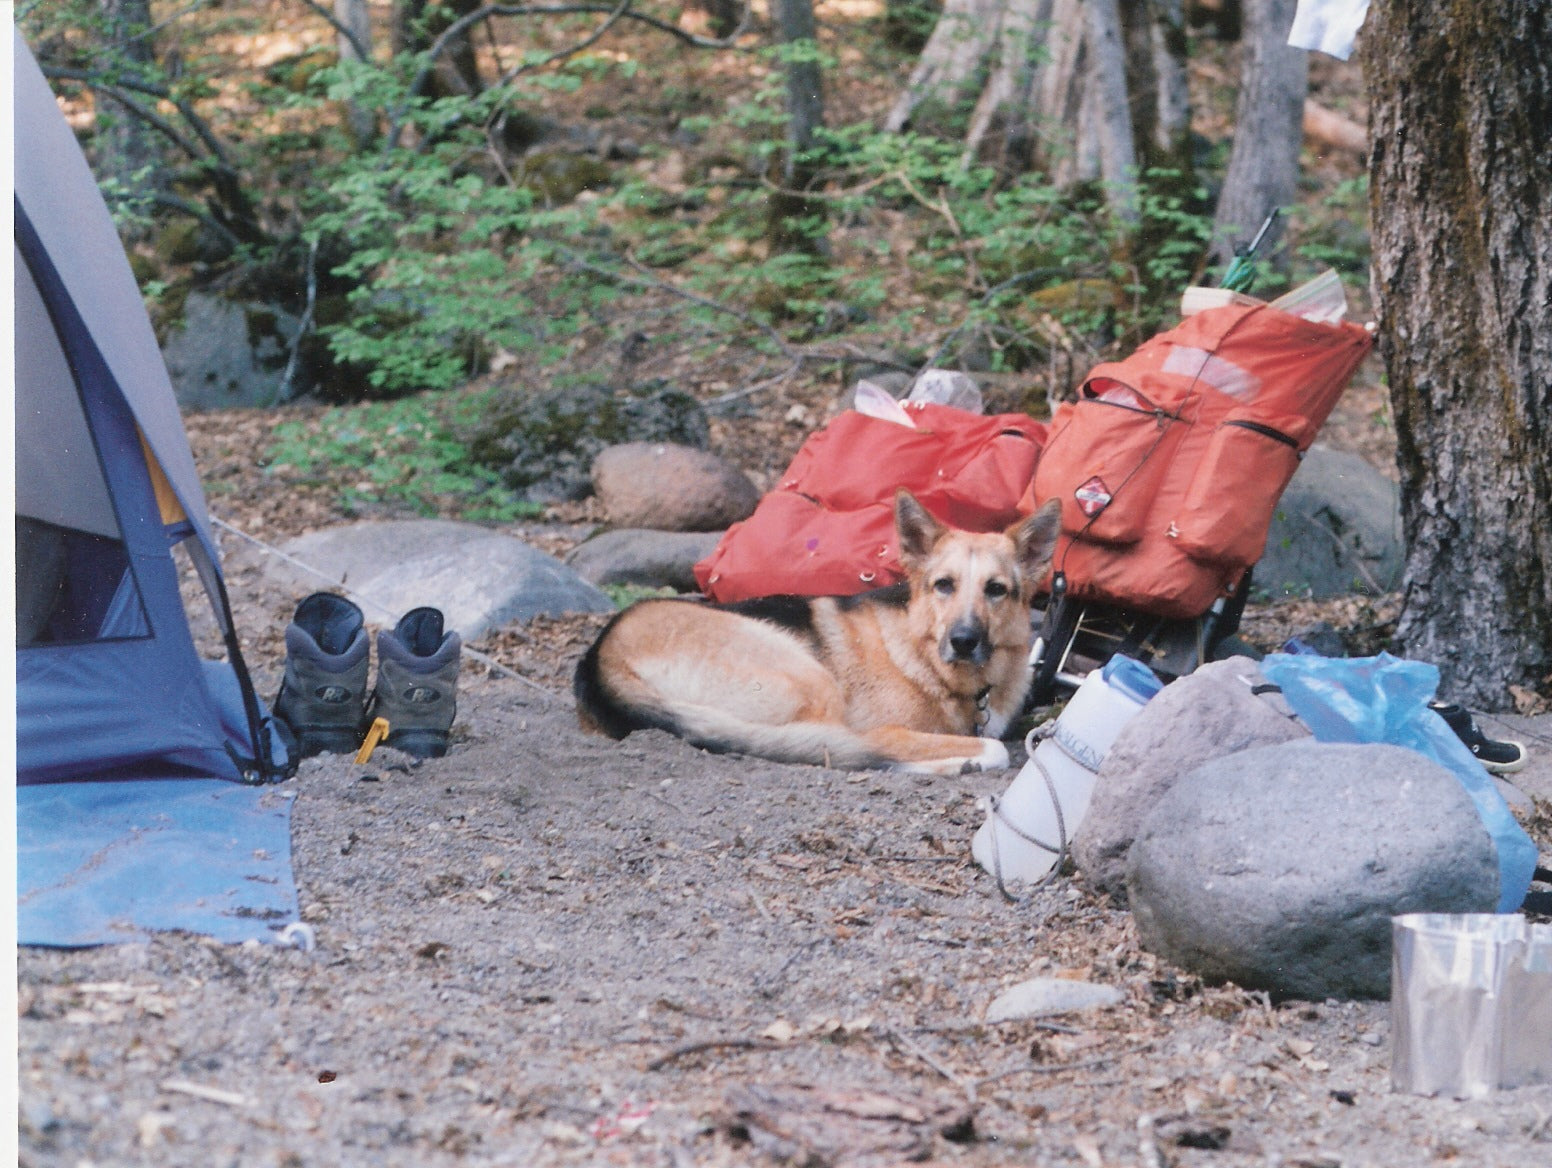 Jerry curled up next to the tent amidst all the gear.